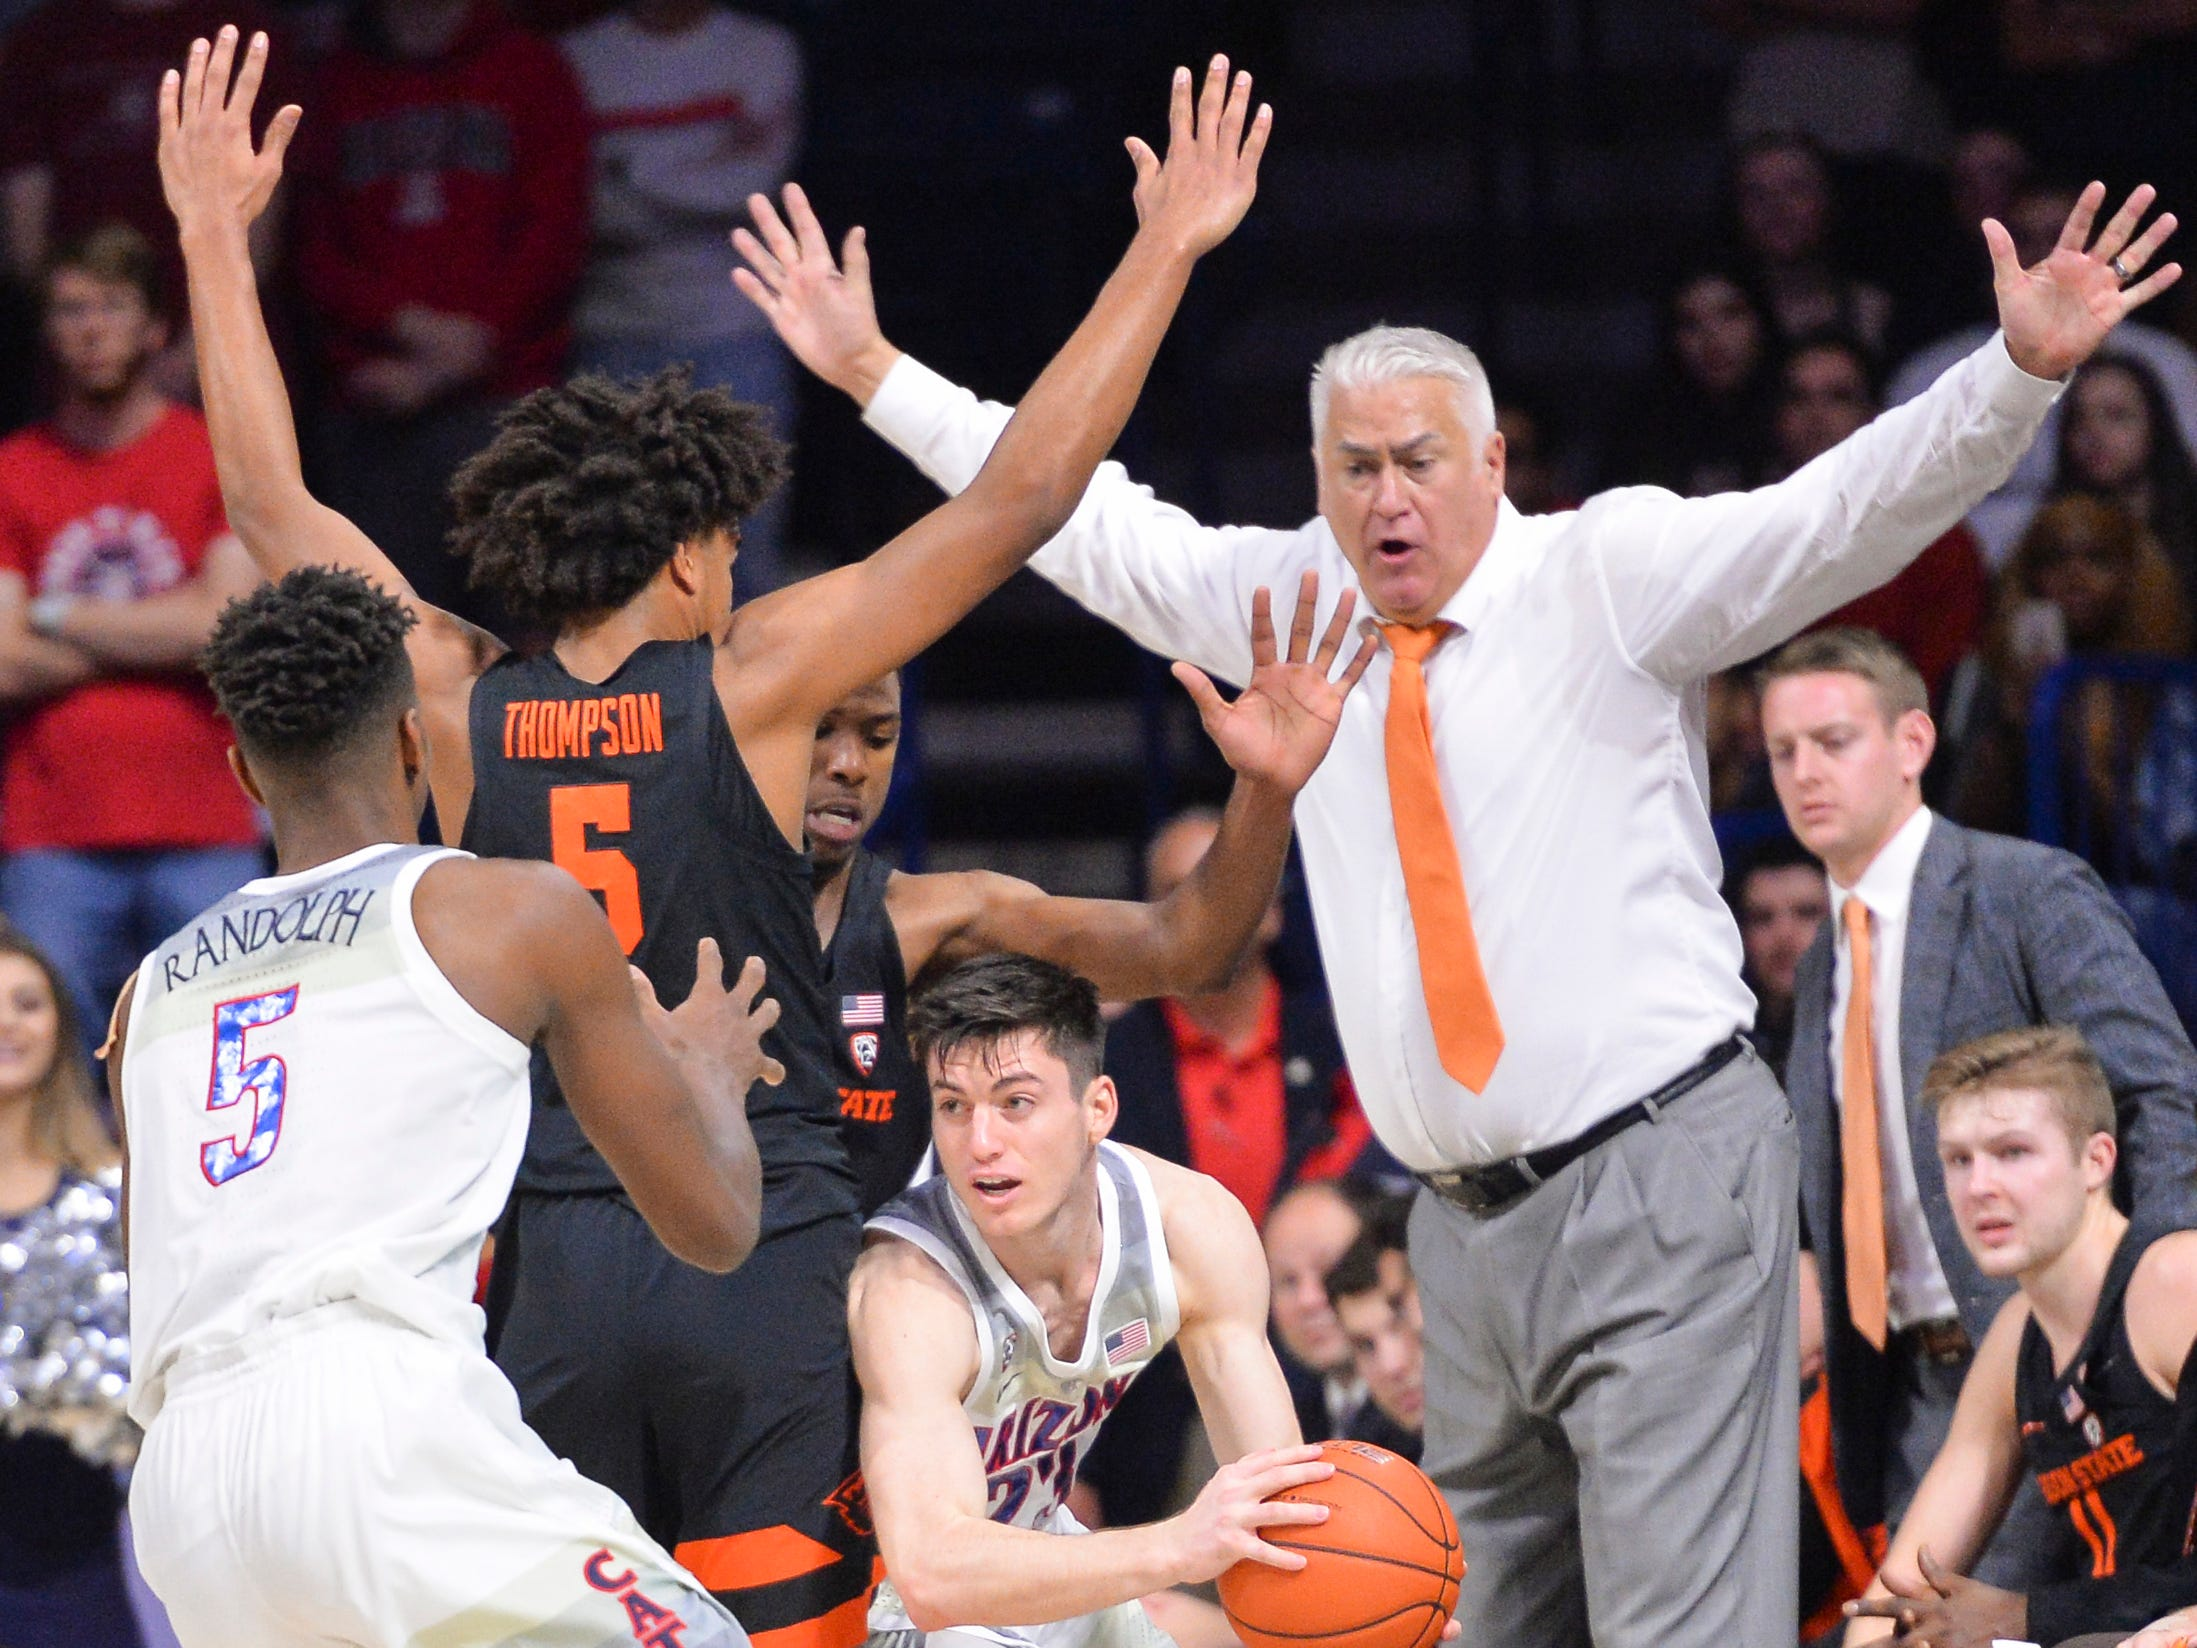 Jan 19, 2019; Tucson, AZ, USA; Arizona Wildcats guard Alex Barcello (23) attempts to pass the ball as Oregon State Beavers guard Ethan Thompson (5) and head coach Wayne Tinkle (right) defend during the second half at McKale Center. Mandatory Credit: Casey Sapio-USA TODAY Sports